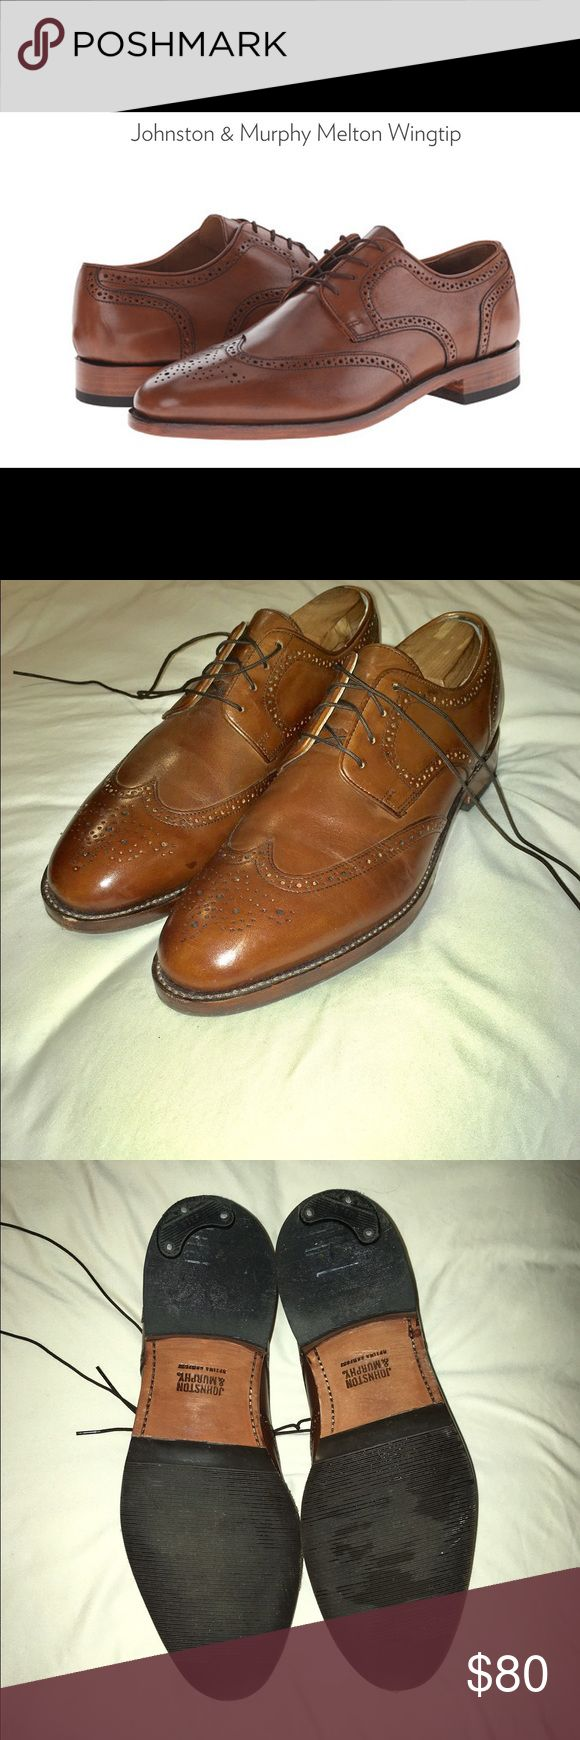 Johnston & Murphy Melton Wingtip Mint condition J&M Melton Wingtips. Rubber protection and plastic heel tap added. Worn only 5 times. Original price $175, selling for $80. Johnston & Murphy Shoes Oxfords & Derbys